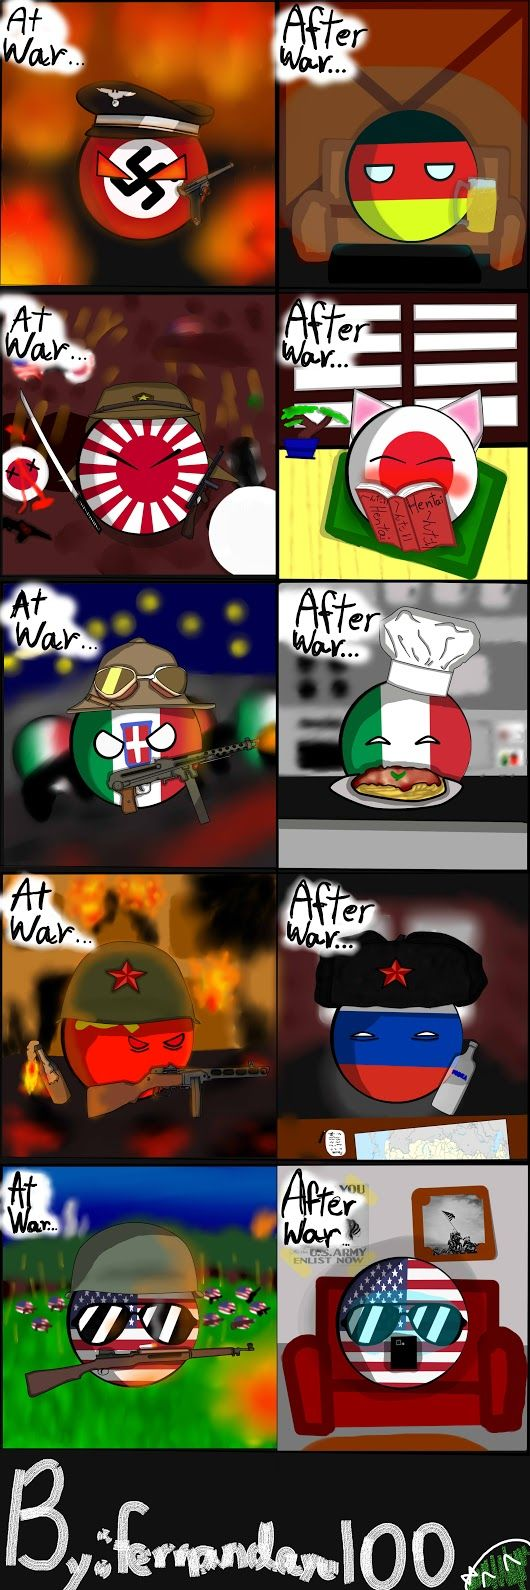 The Countries after war